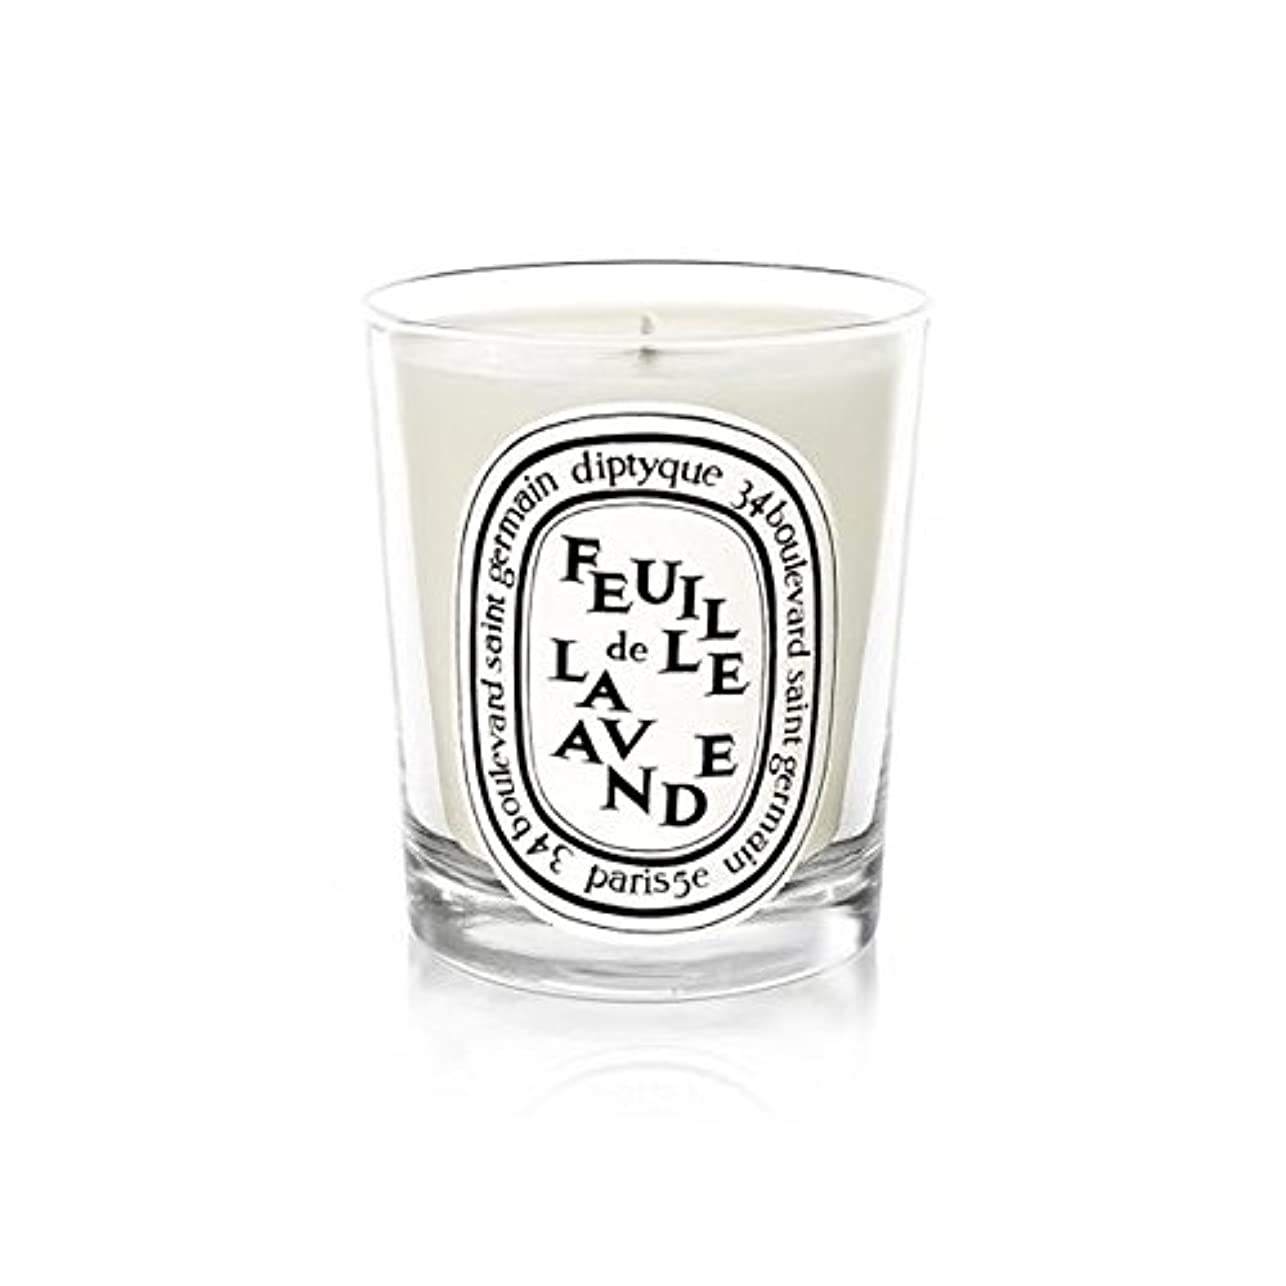 Diptyque Candle Feuille De Lavande / Lavender Leaf 190g (Pack of 6) - DiptyqueのキャンドルFeuilleデラバンデ/ラベンダーの葉190グラム...